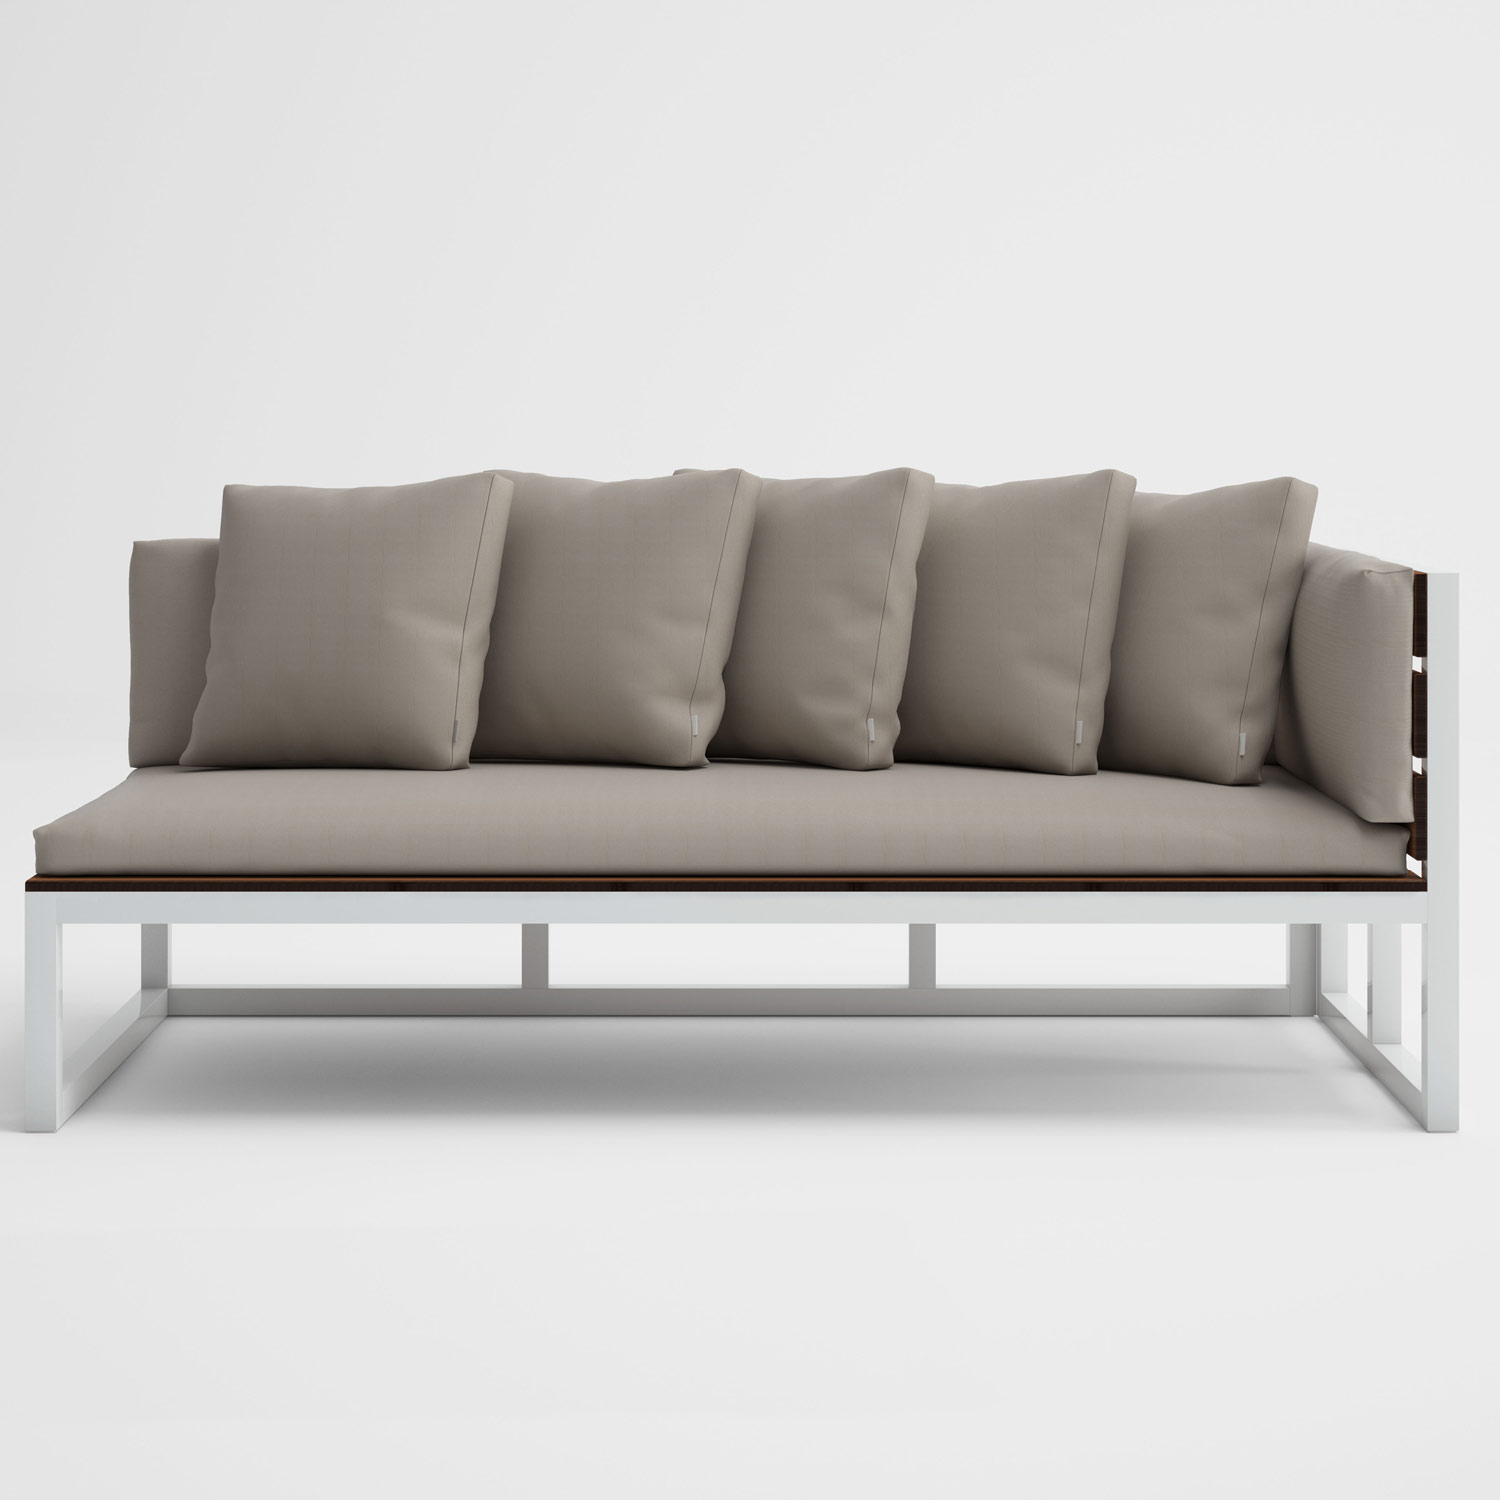 SALER SOFT Sofa Modul 1 Cover